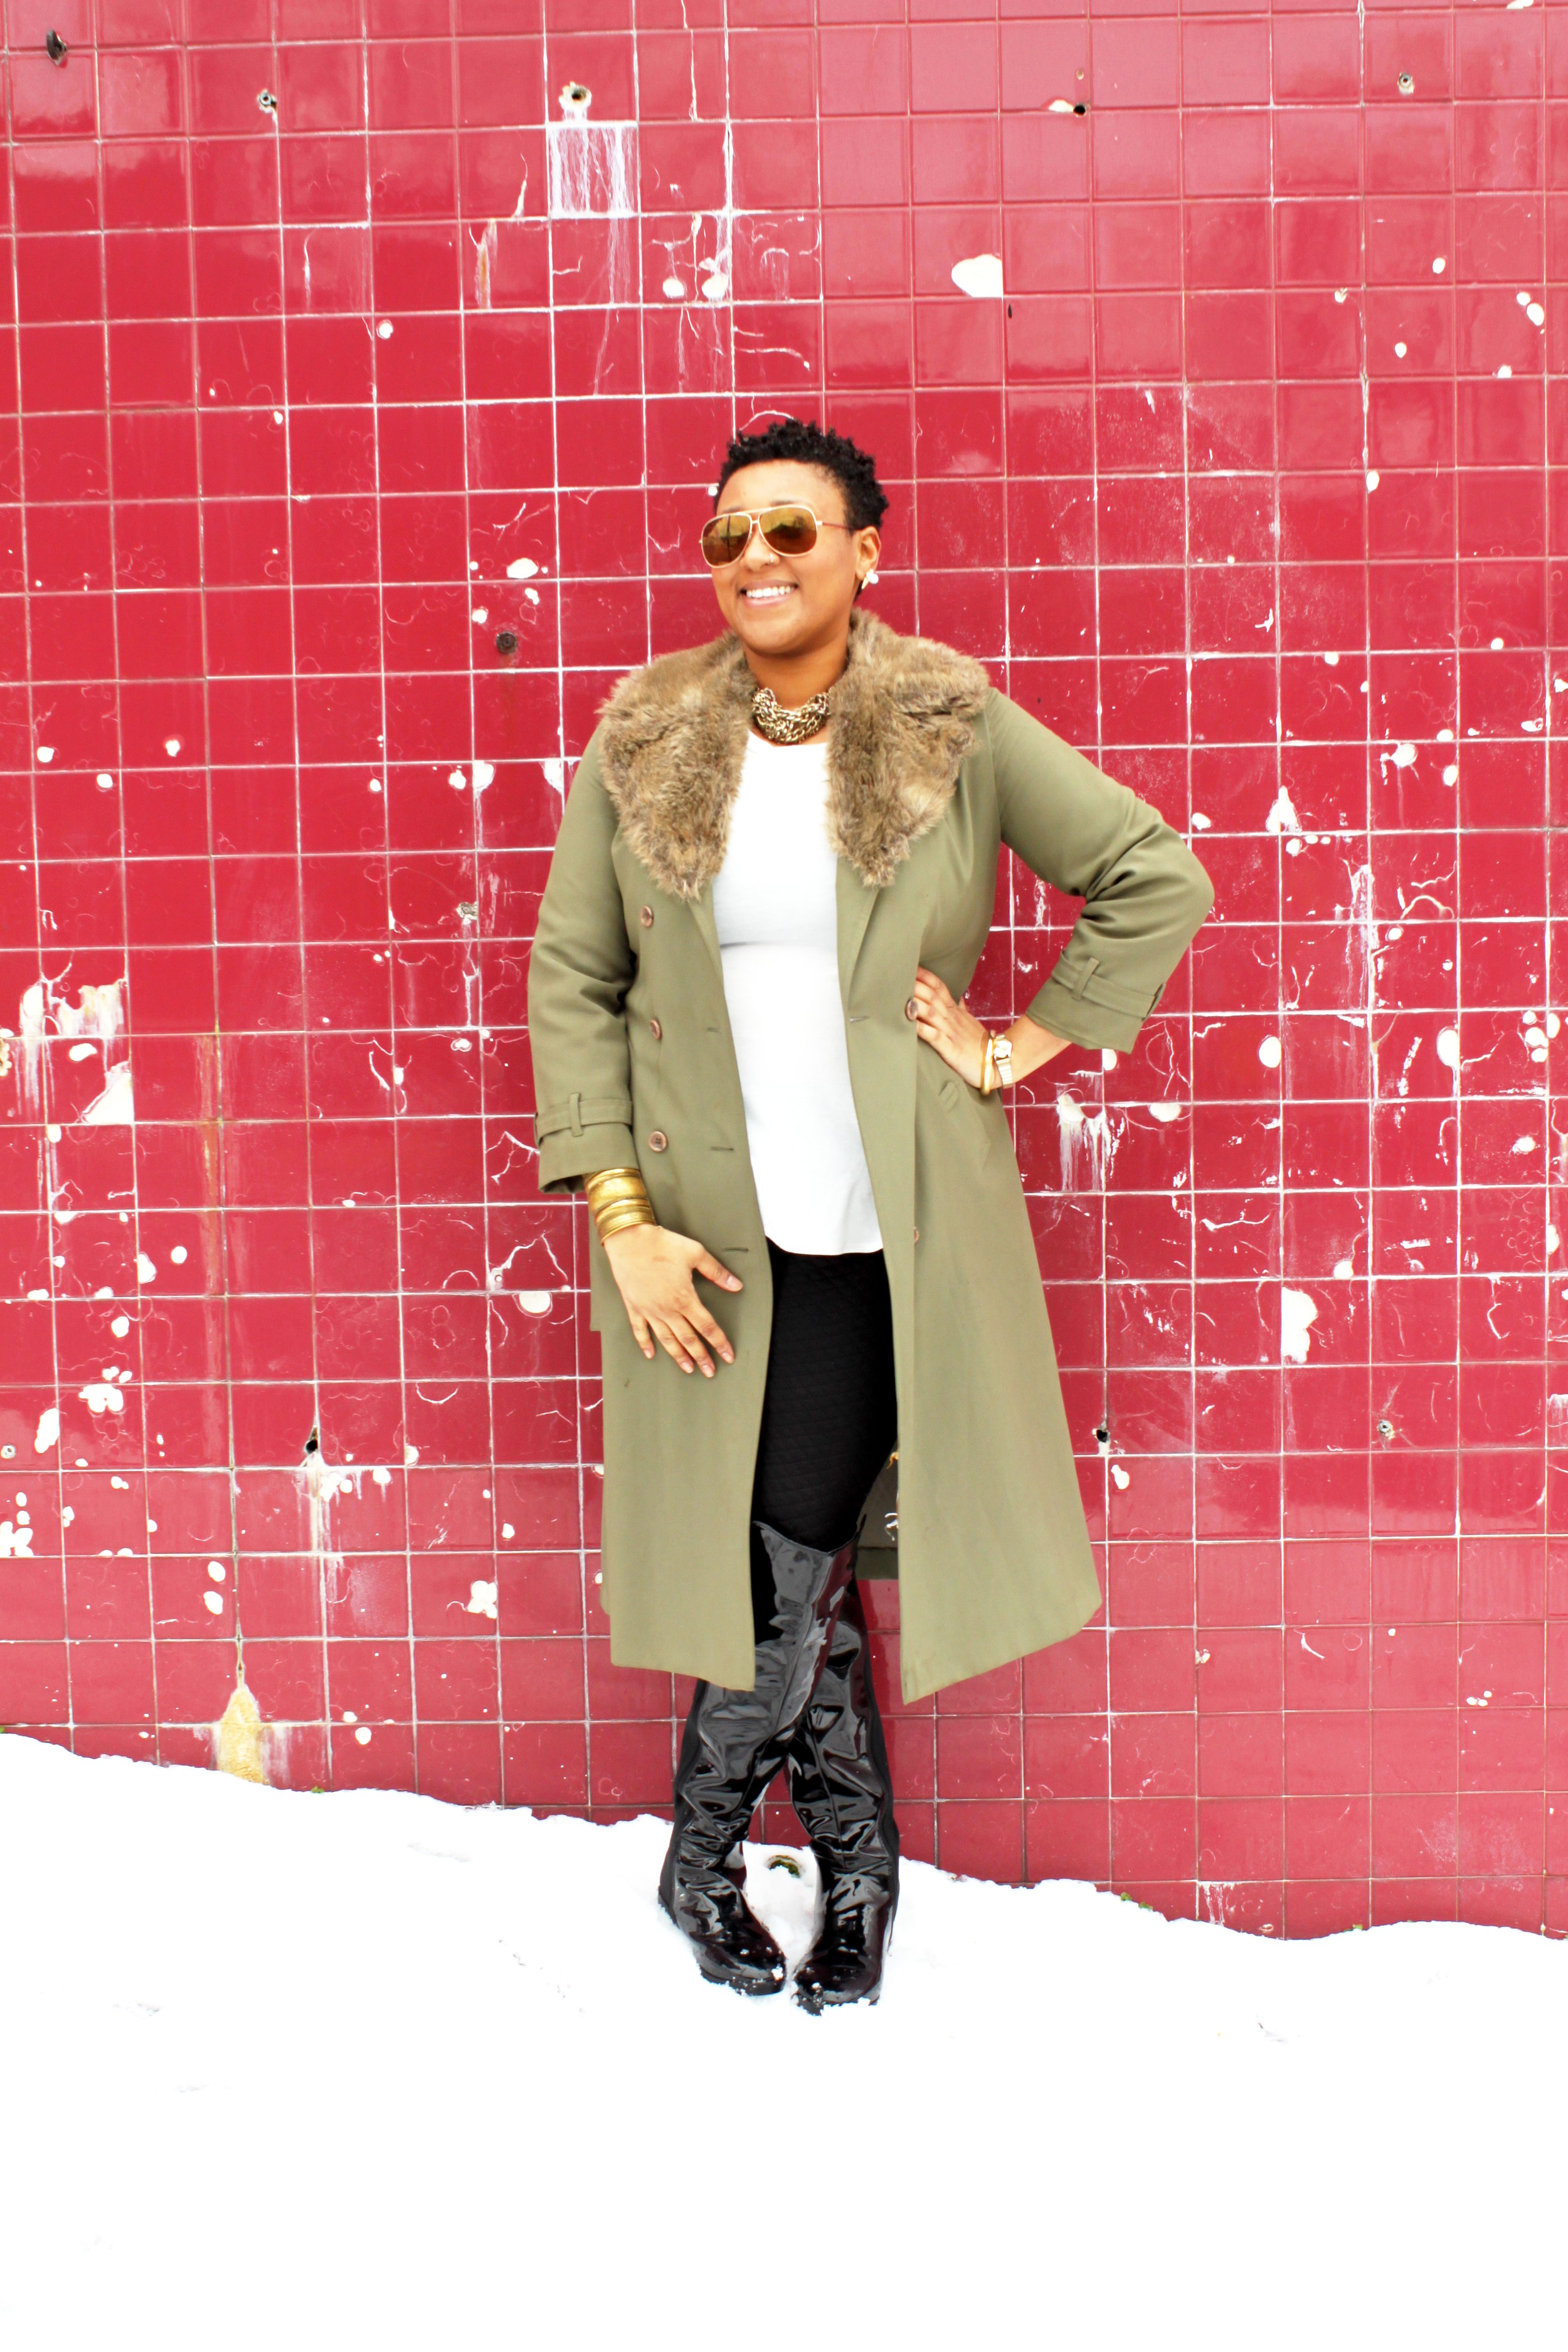 plus size fashion - patent leather over the knew boots  - thrifted trench coat - forever 21 plus peplum top